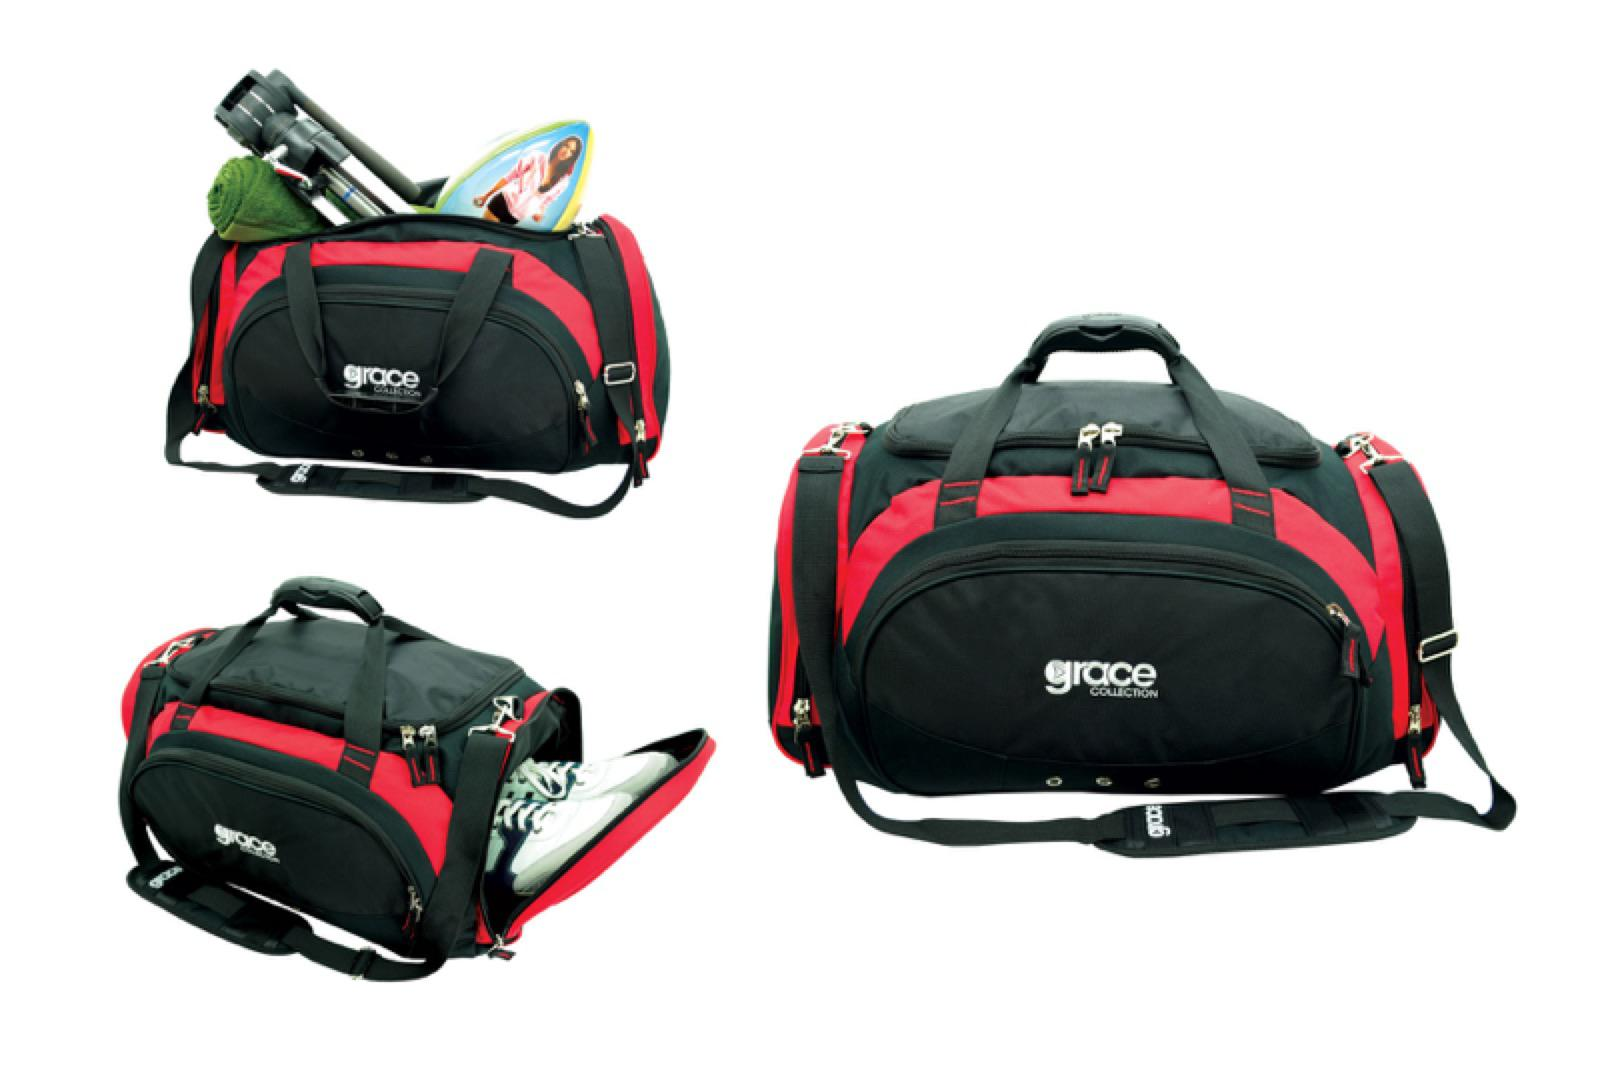 Orion Sports Bag, From 26.89